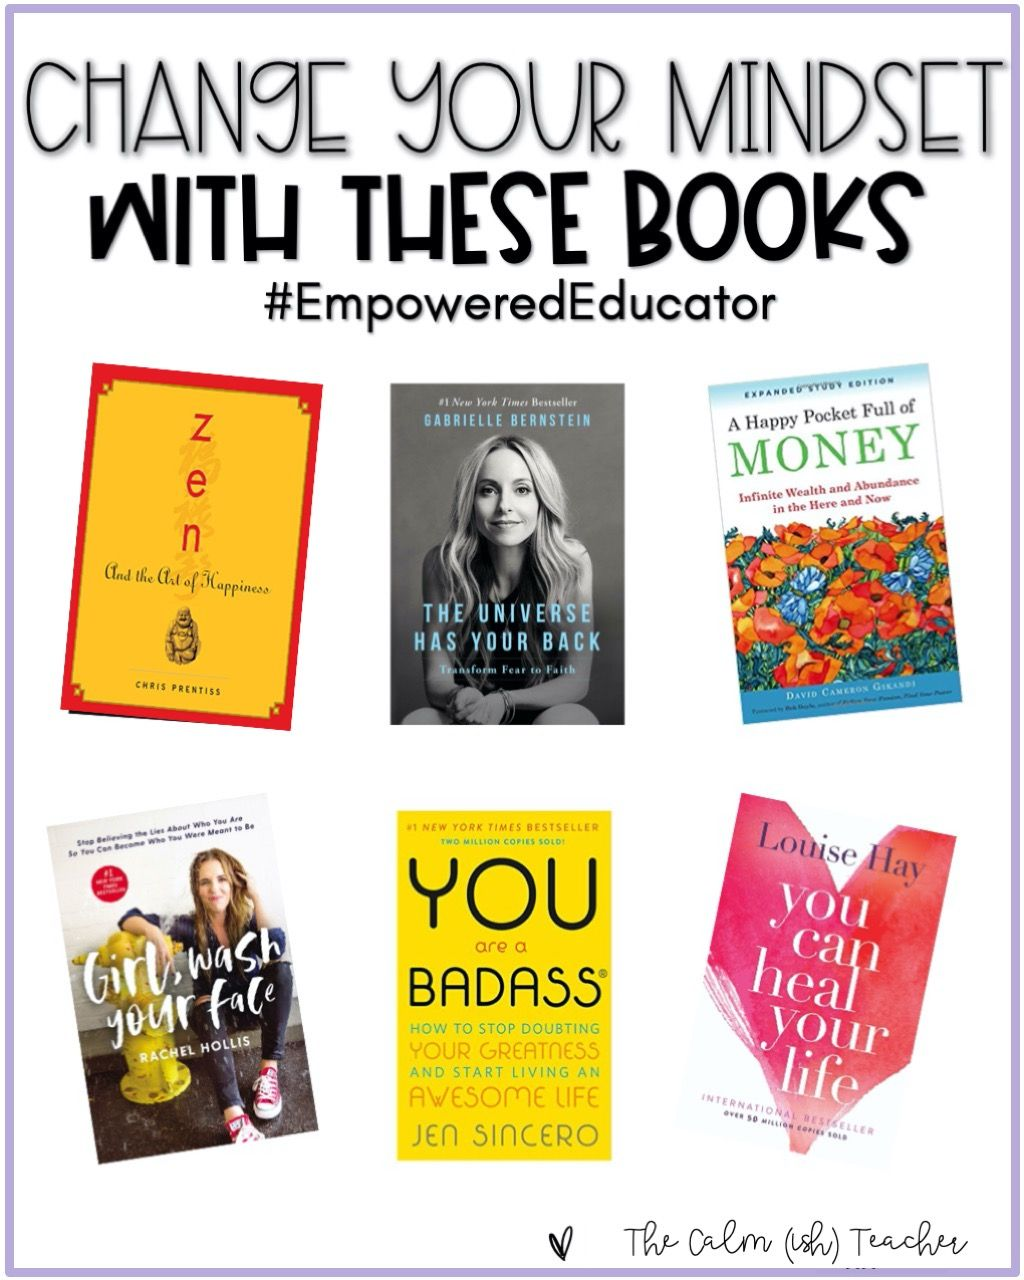 Change Your Mindset With These Books